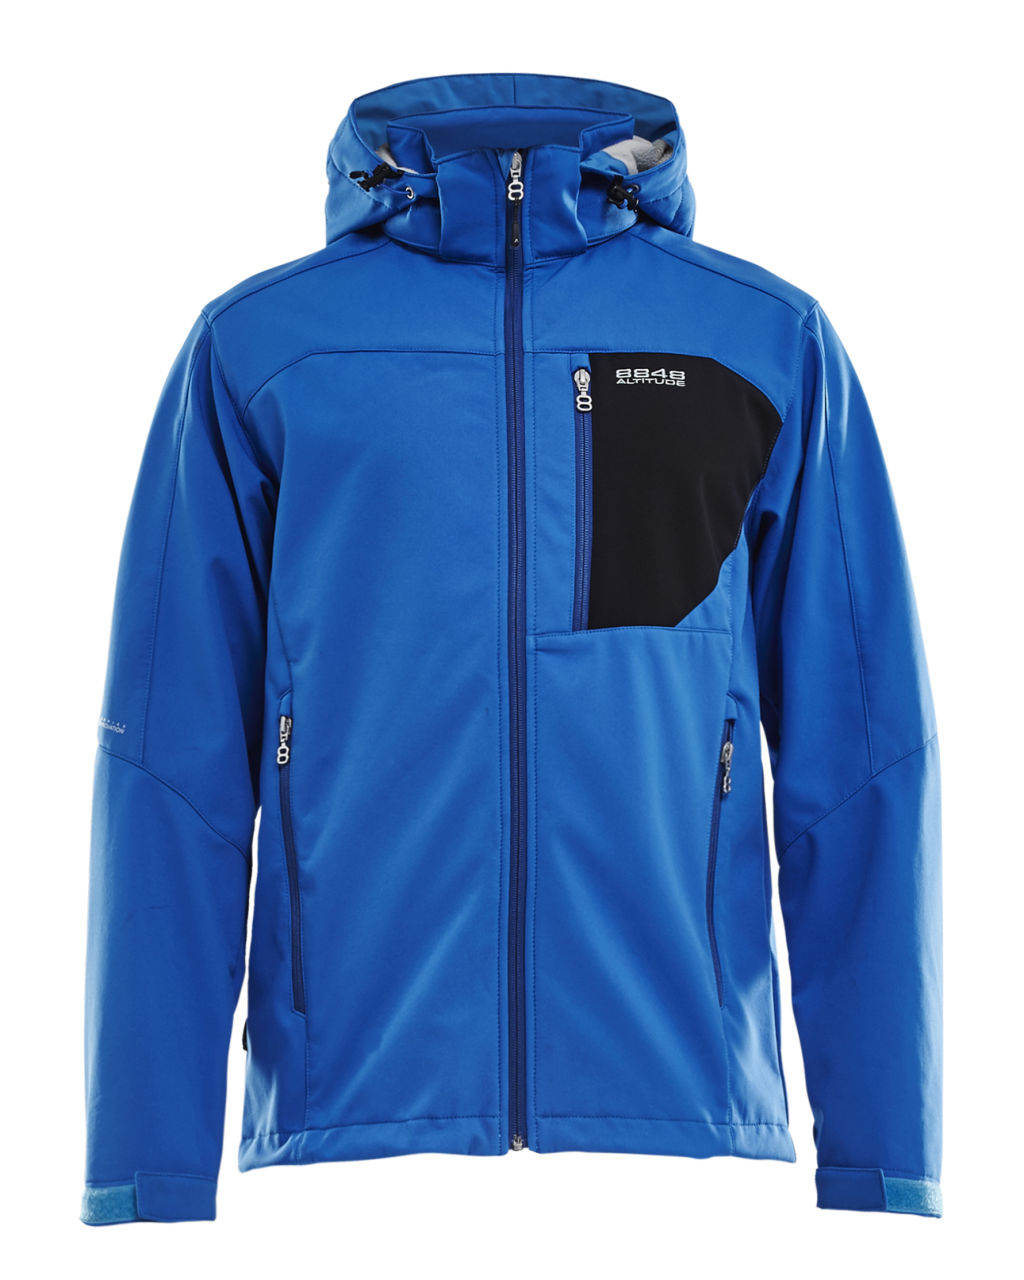 8848 Altitude Daft Jacket M